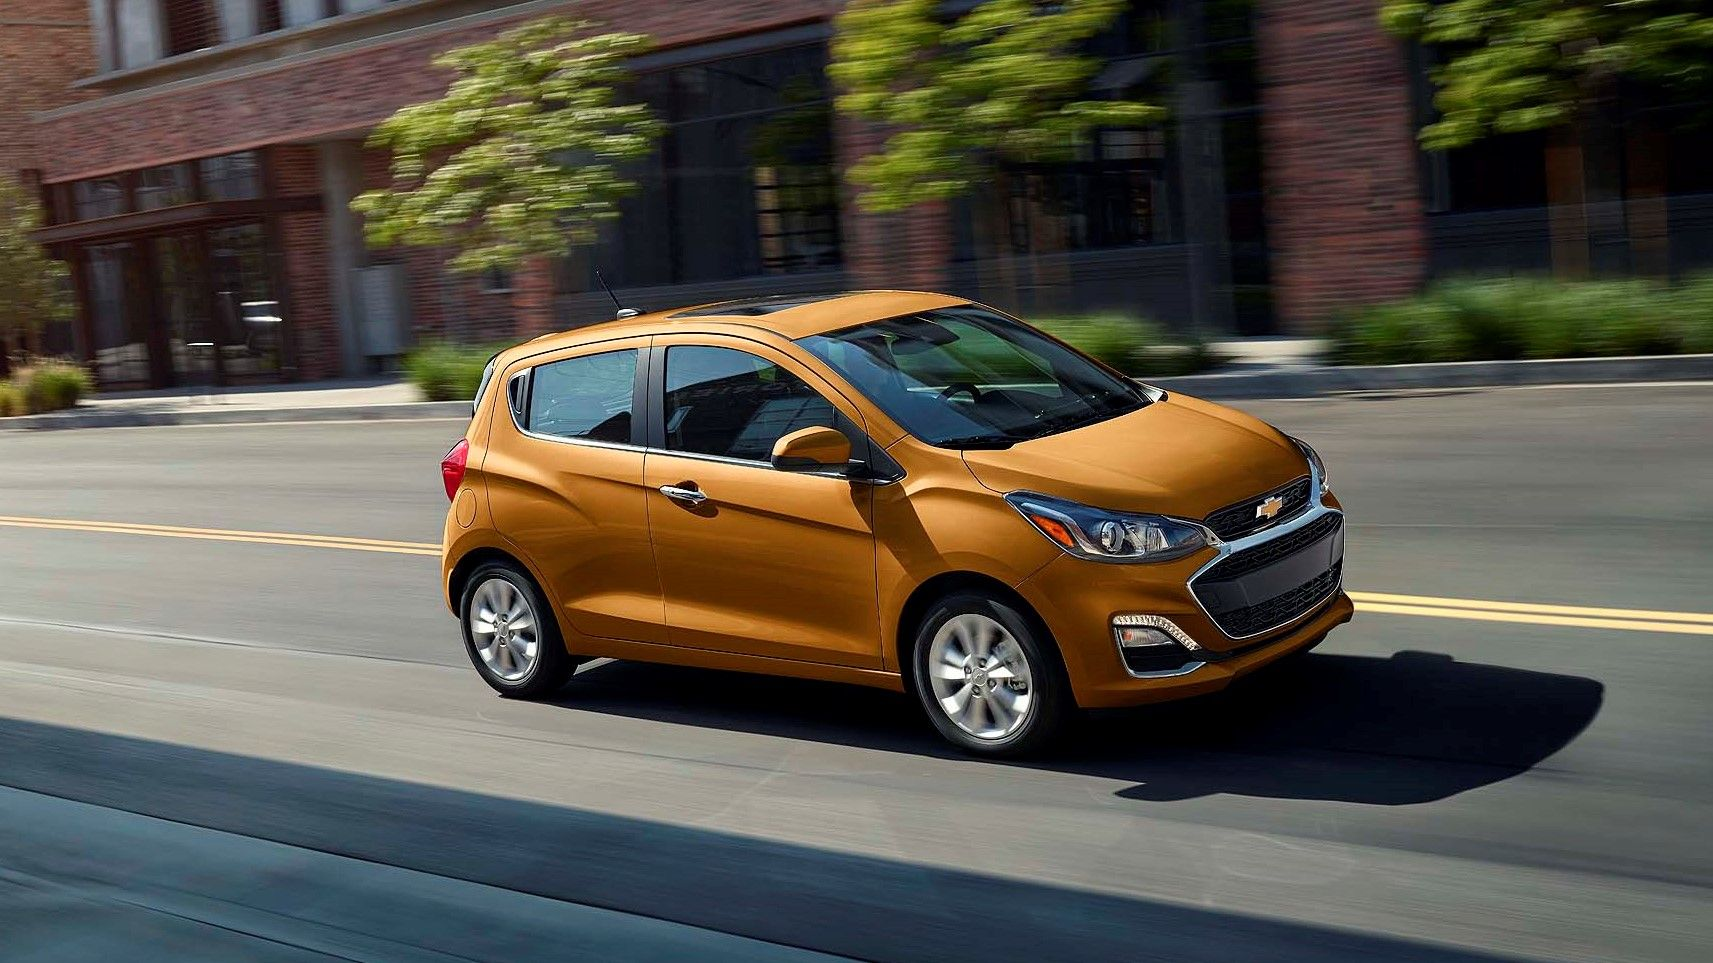 2019 chevrolet spark green ride at speed